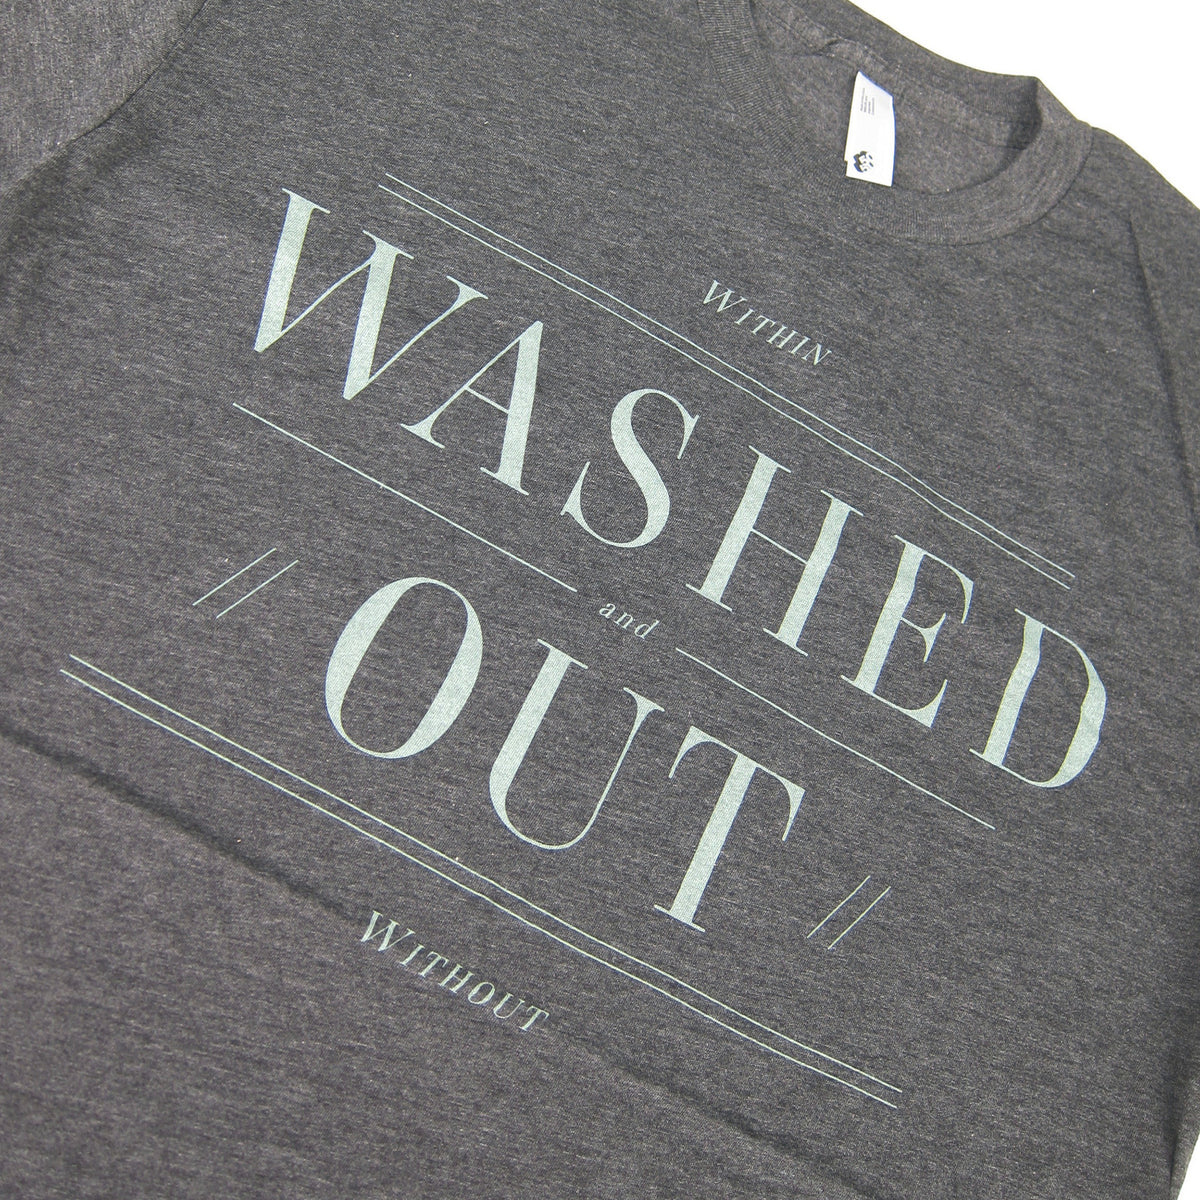 Washed Out: Within & Without Shirt - Heather Black